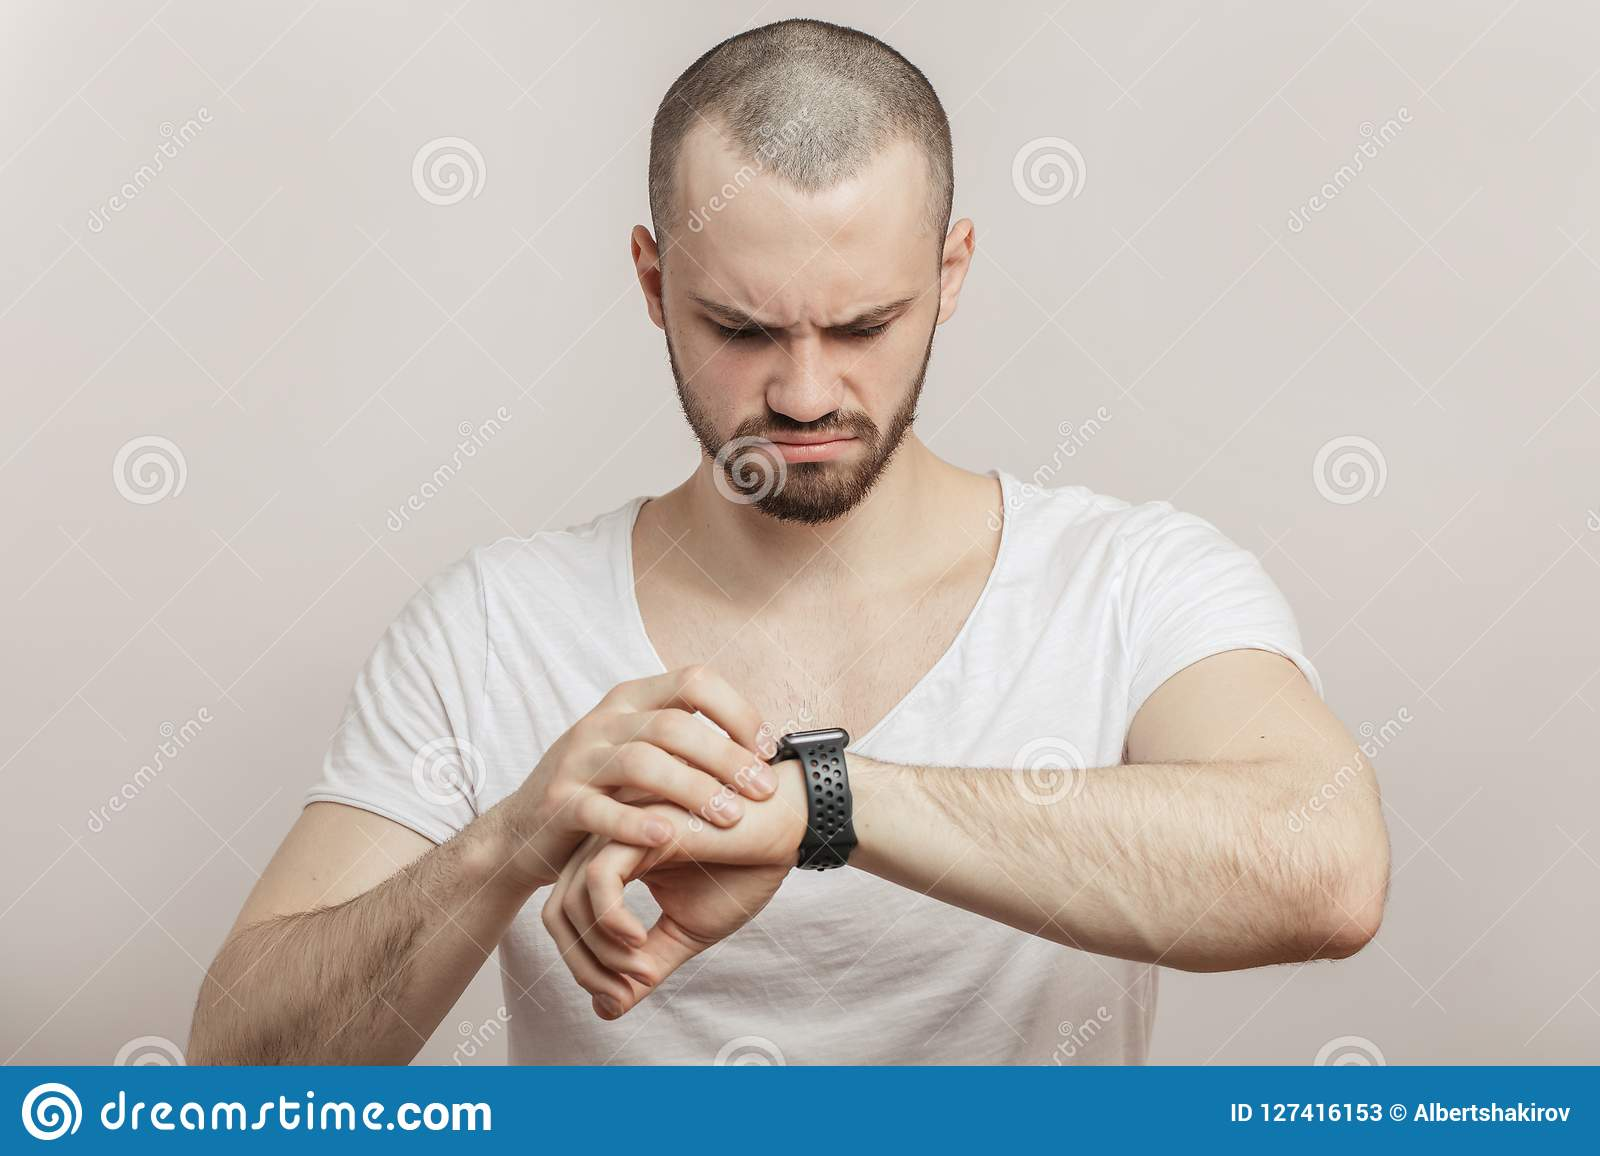 Upset, angry athlete with heart rate monitor watch.